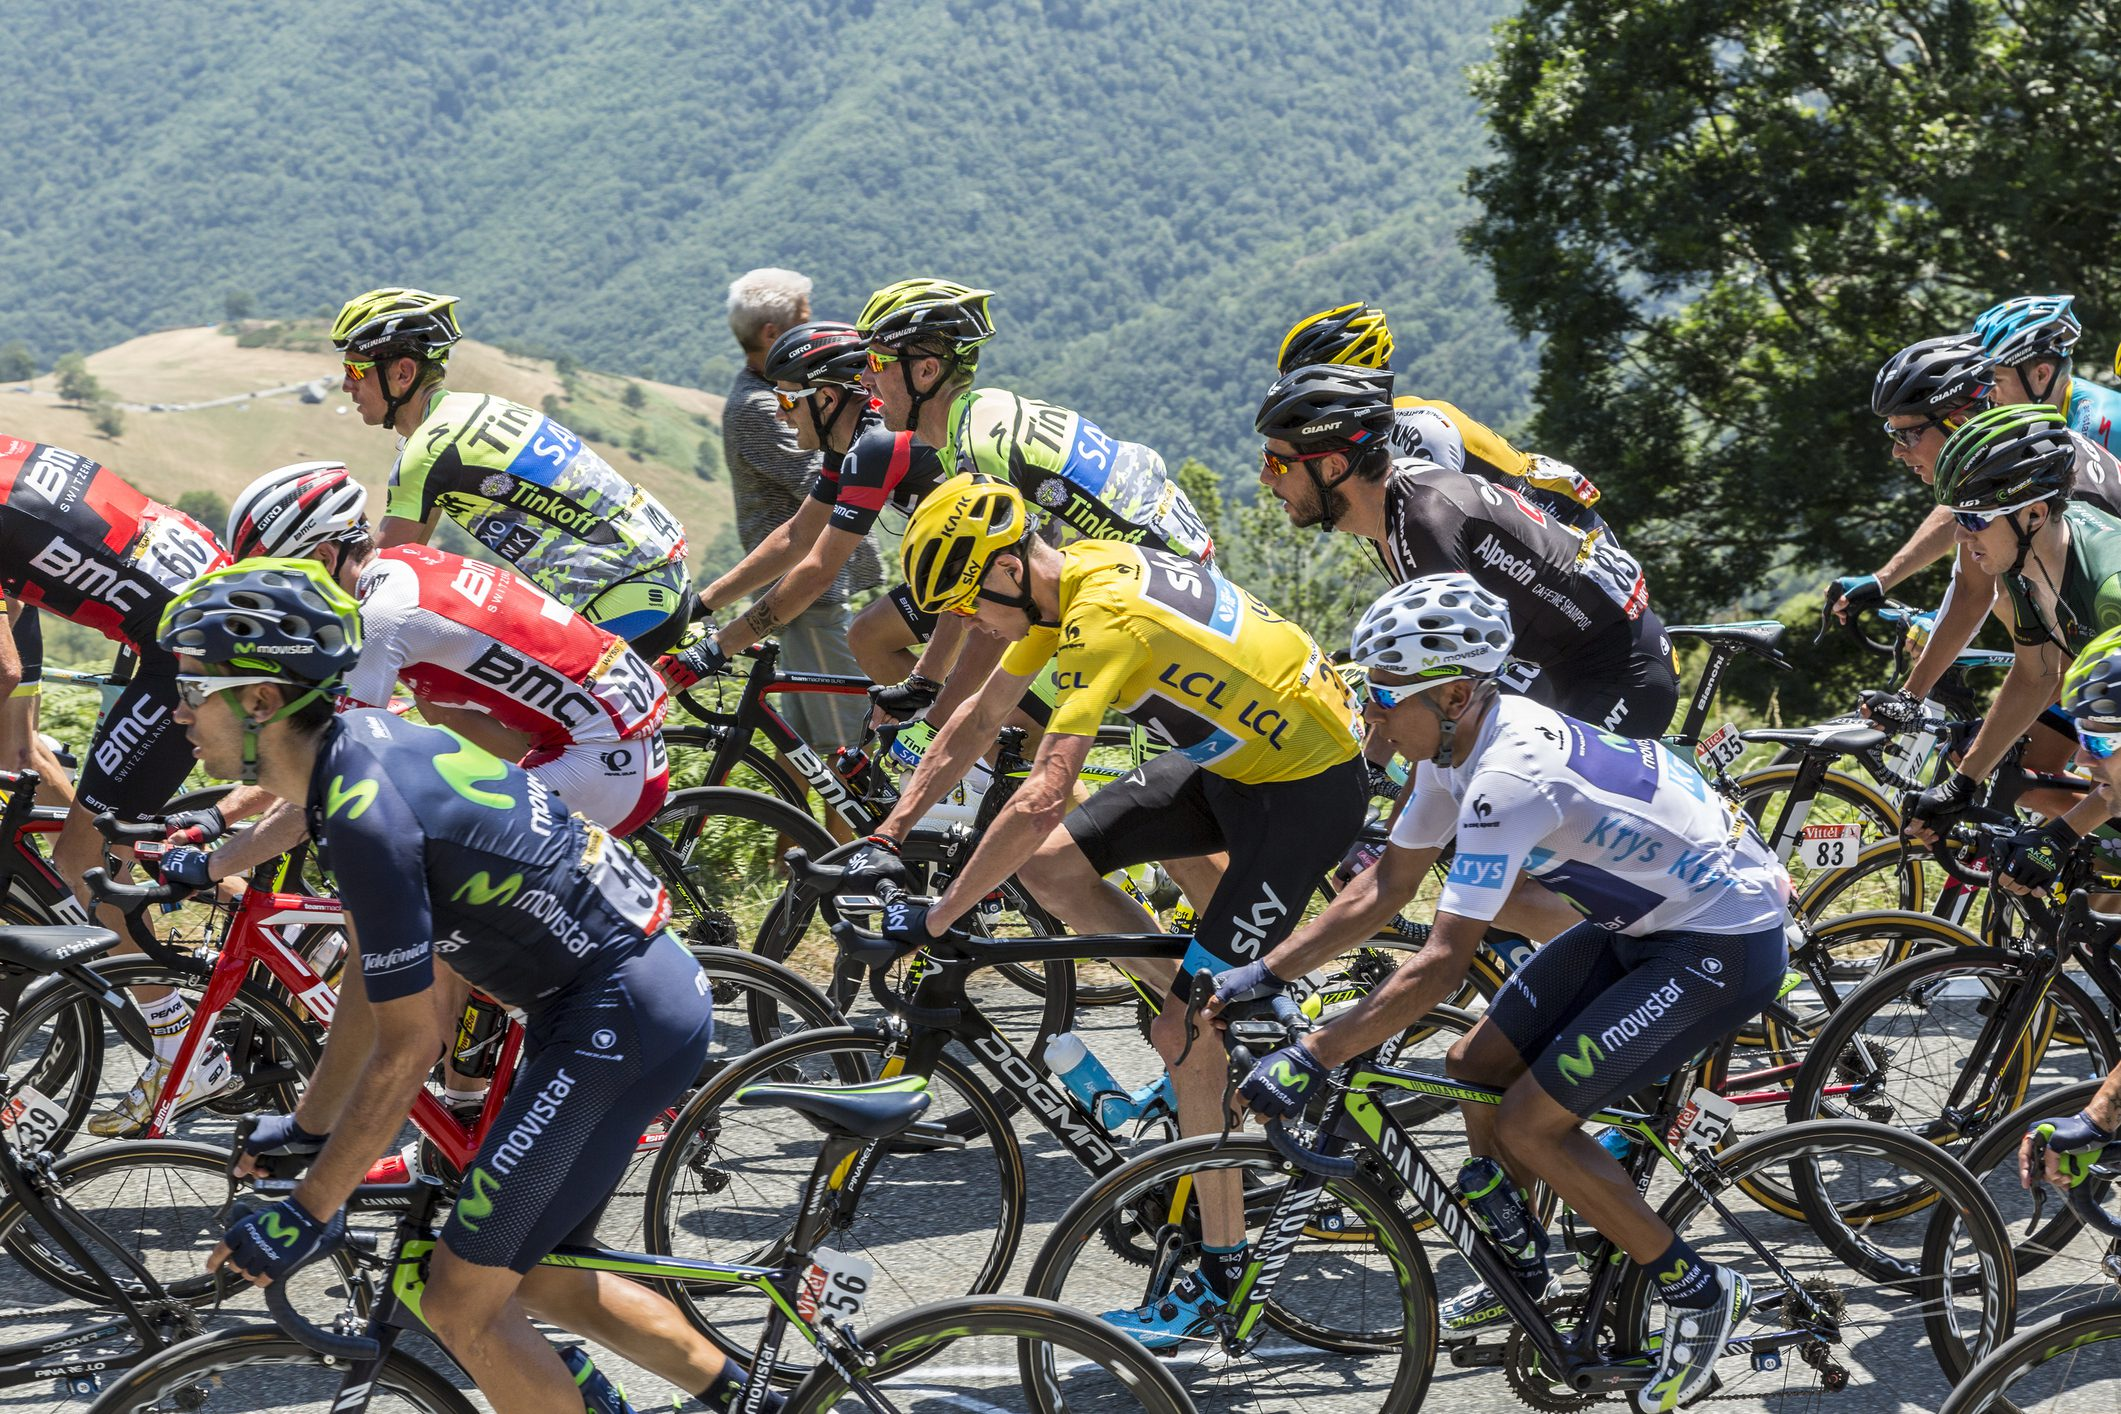 Grid start coming to 2018 Tour de France s explosive Stage 17     What promised to already be an explosive Stage 17 of the 2018 Tour de France  in the Pyrenees will get an additional twist  Race organizer ASO will be